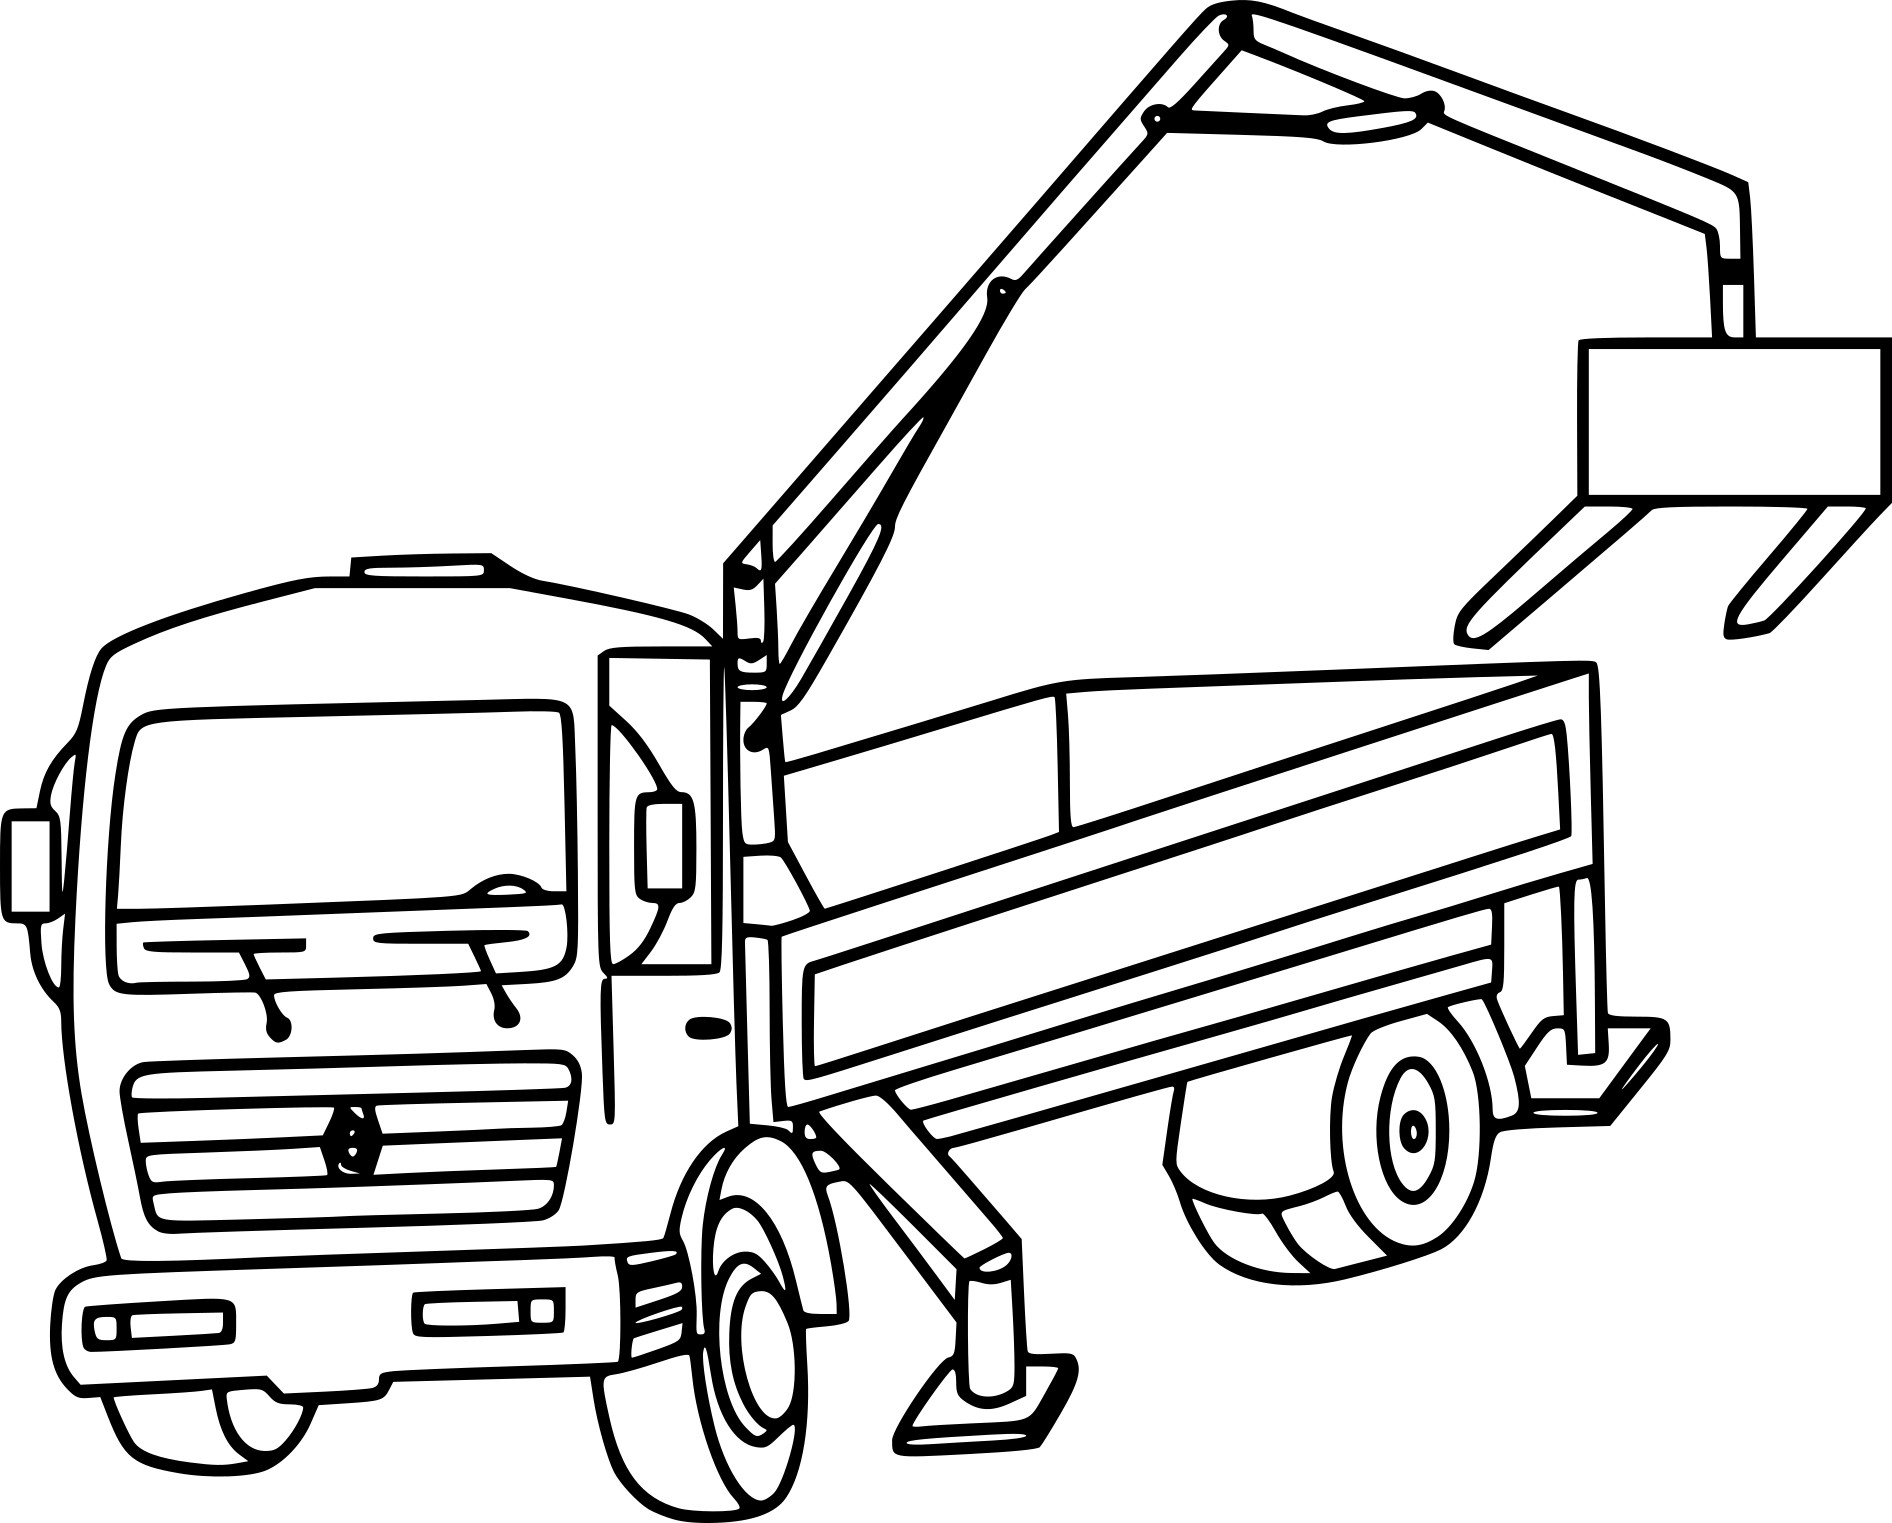 bulldozer coloring pages - coloriage camion grue